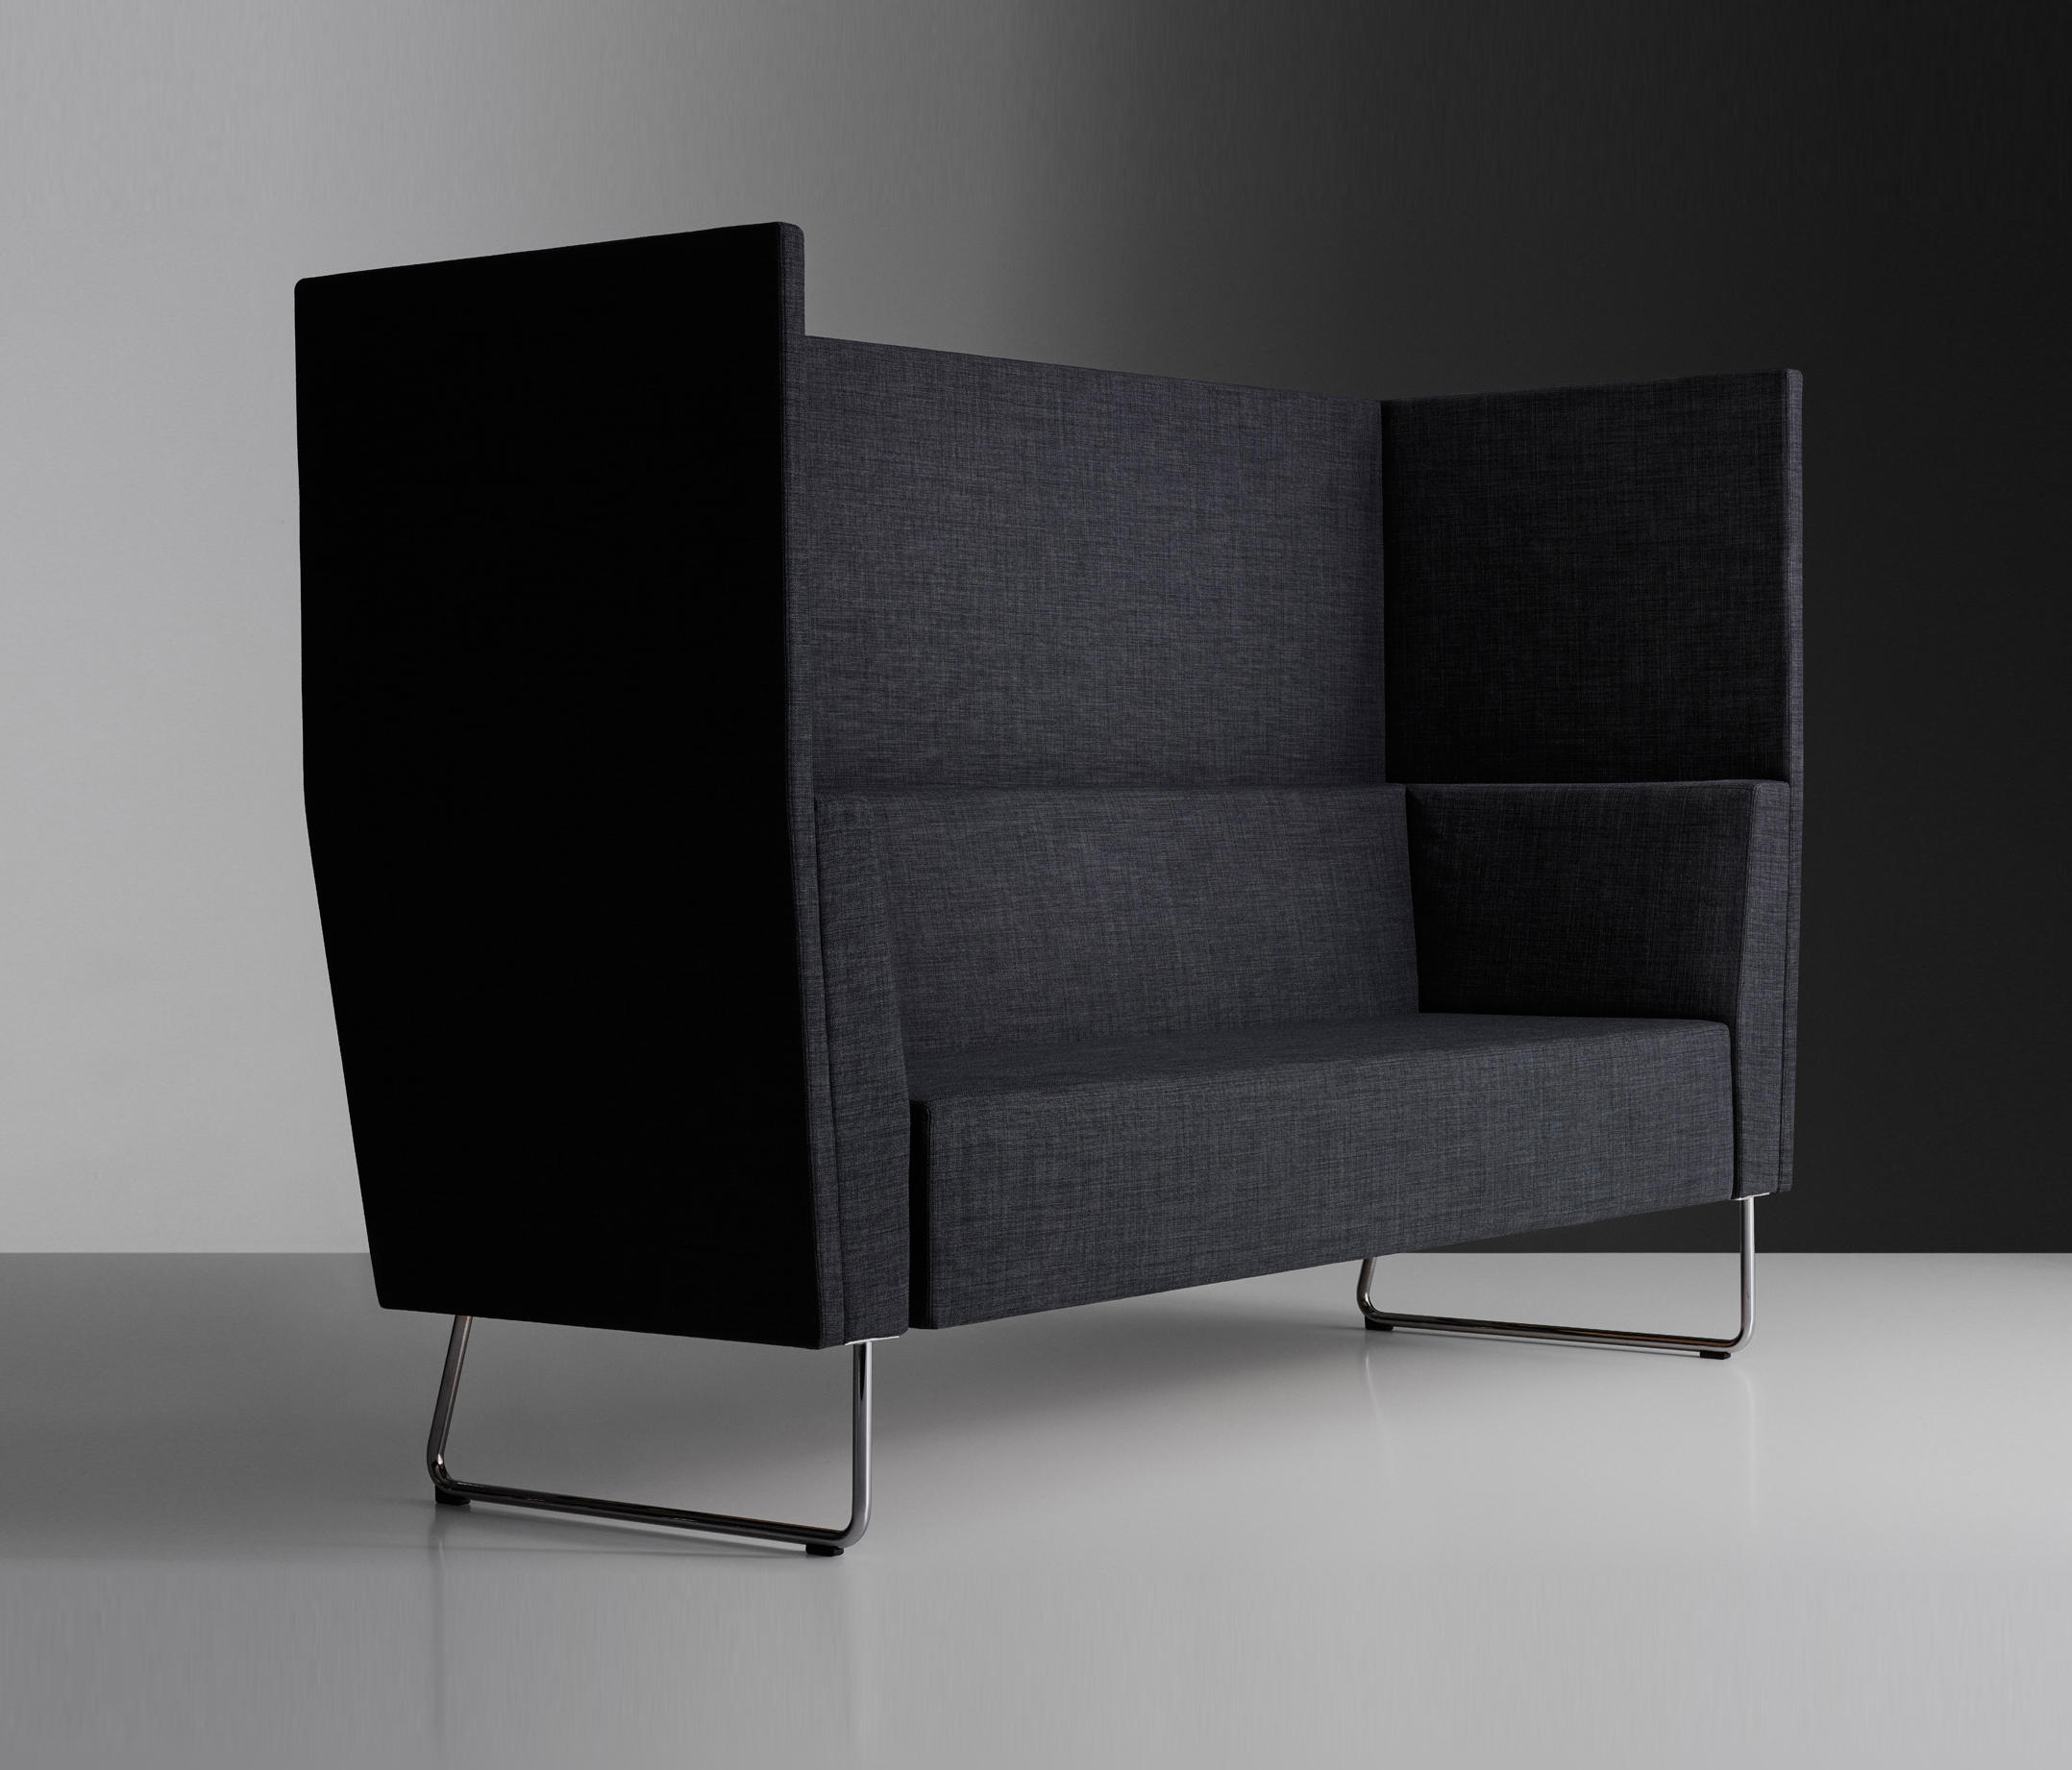 gap meeting - lounge sofas from swedese | architonic, Hause deko